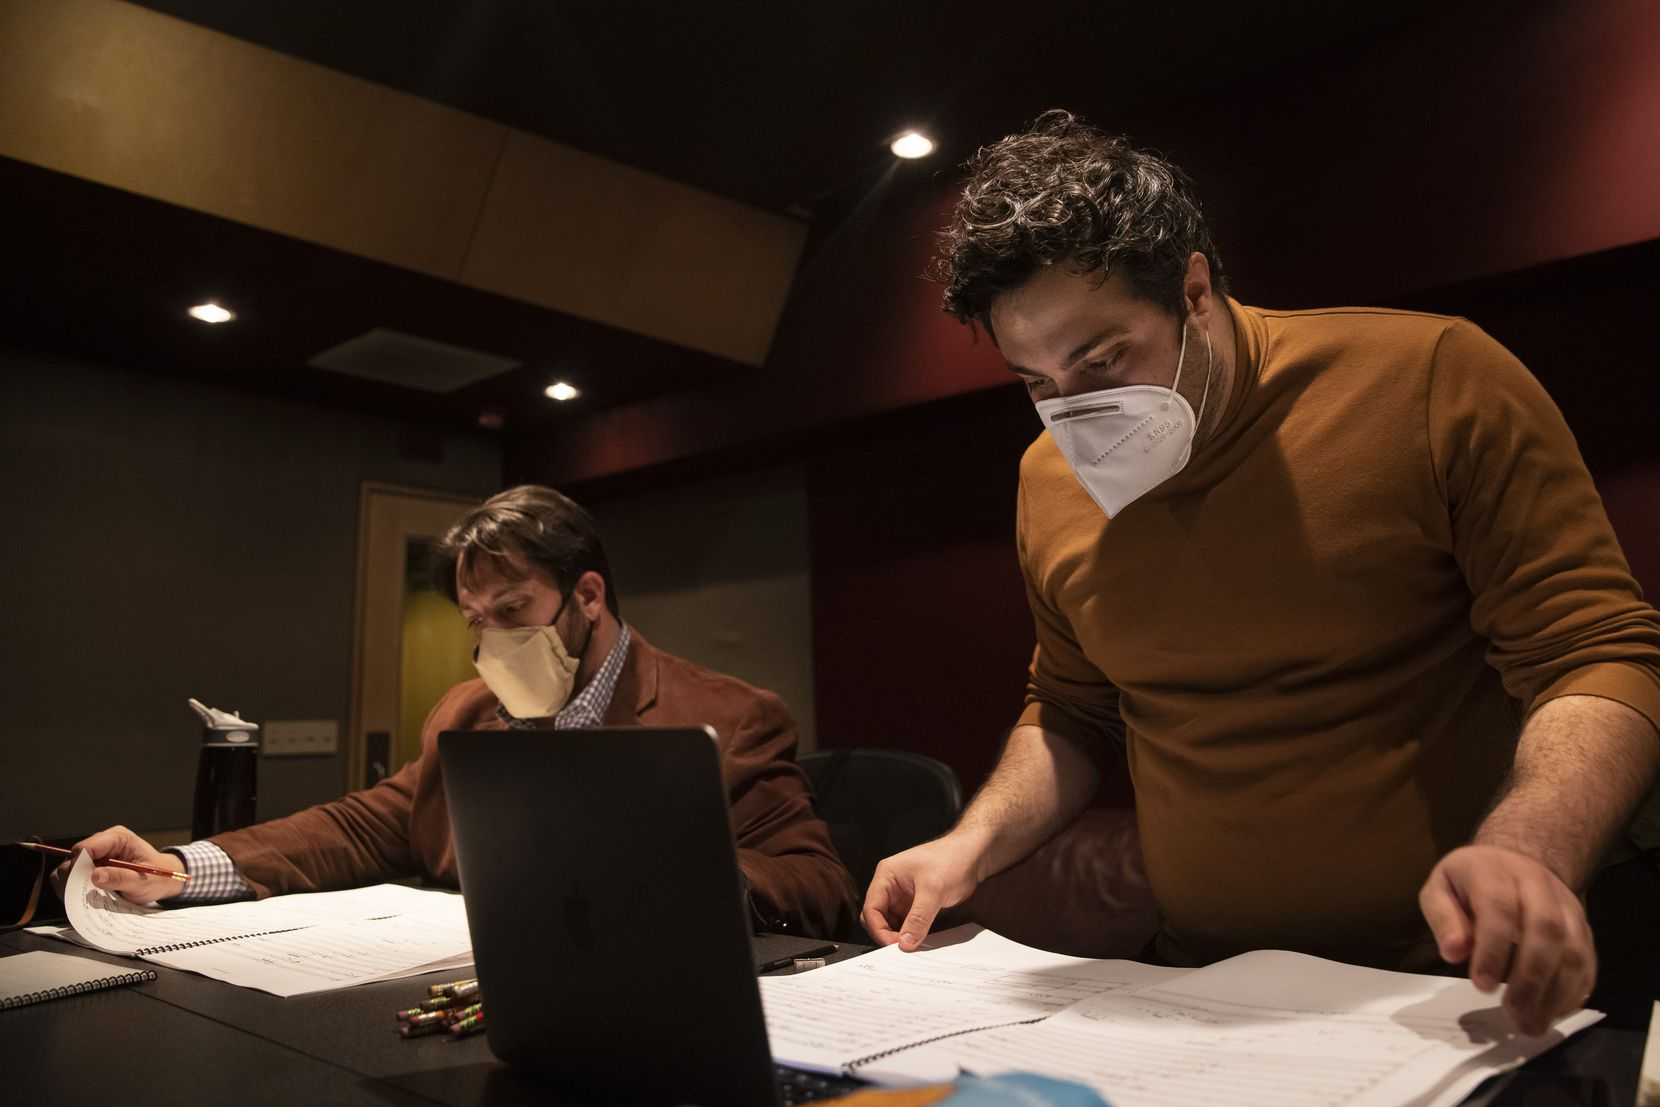 Producer Anthony Maglione (left) and artistic director Sam Brukhman review scores as members of the Verdigris Ensemble record 'Betty's Notebook' by Texas-born composer Nicholas Reeves at Luminous Sound on Jan. 23, 2021, in Dallas. The ensemble will be selling and releasing the project on blockchain.